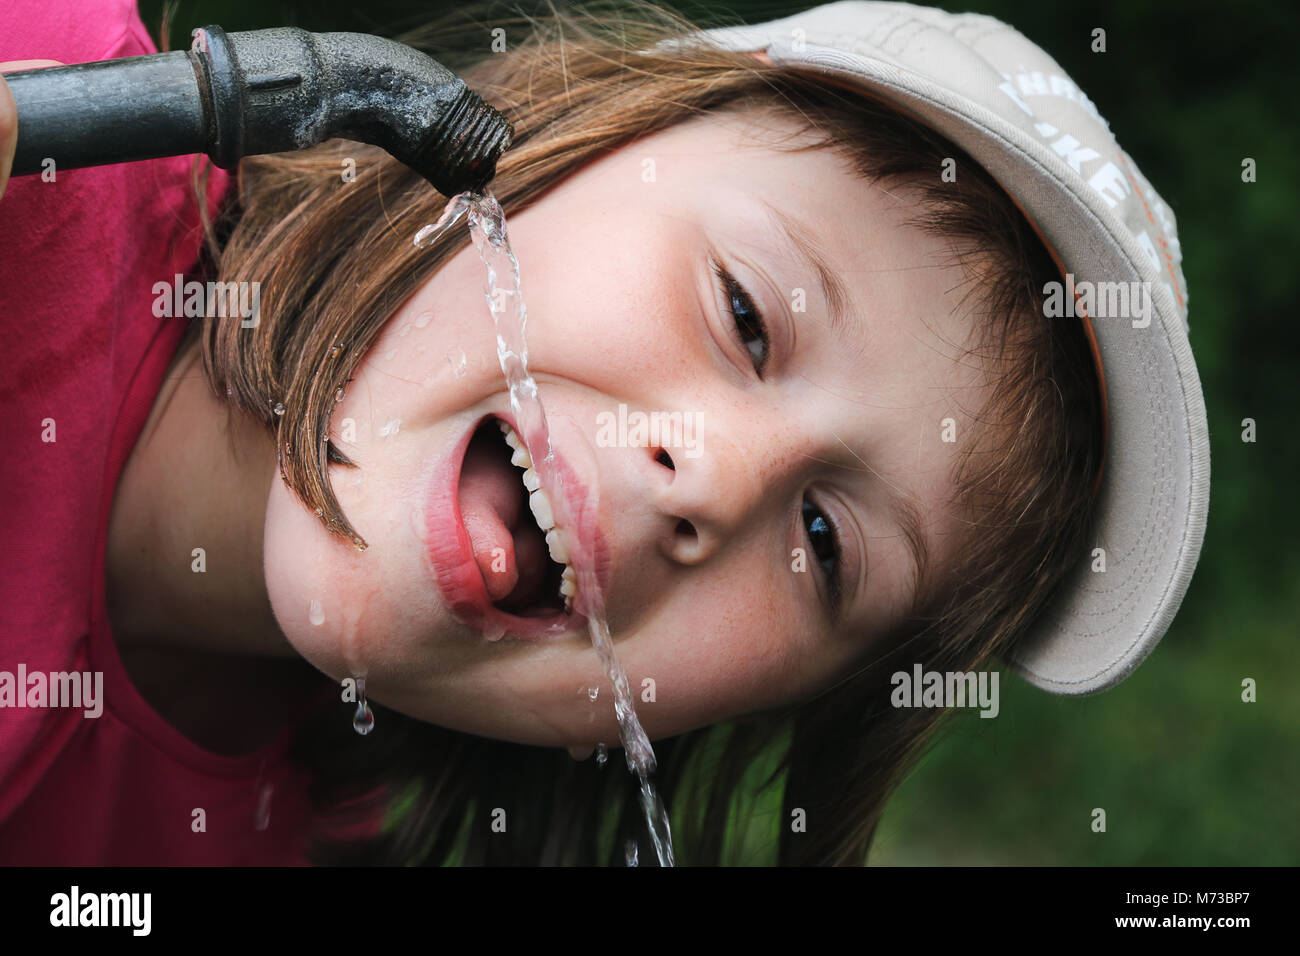 Young girl 8-10 years old drinking water out of the water pipe outside to refresh herself. Clean drinking water - Stock Image